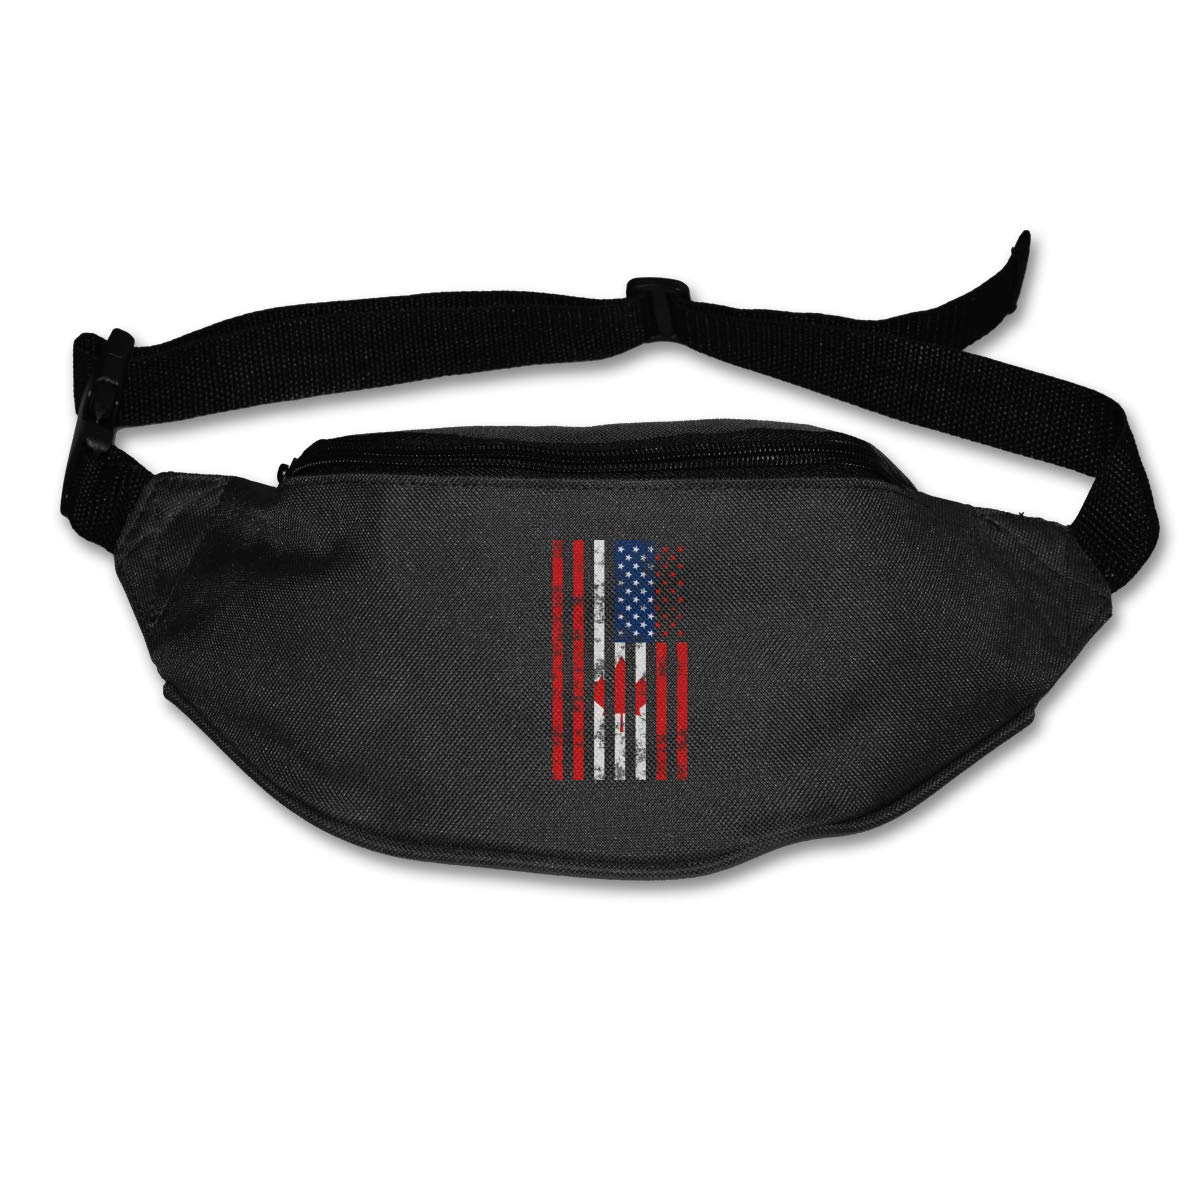 USA Canada Flag Sport Waist Pack Fanny Pack Adjustable For Run